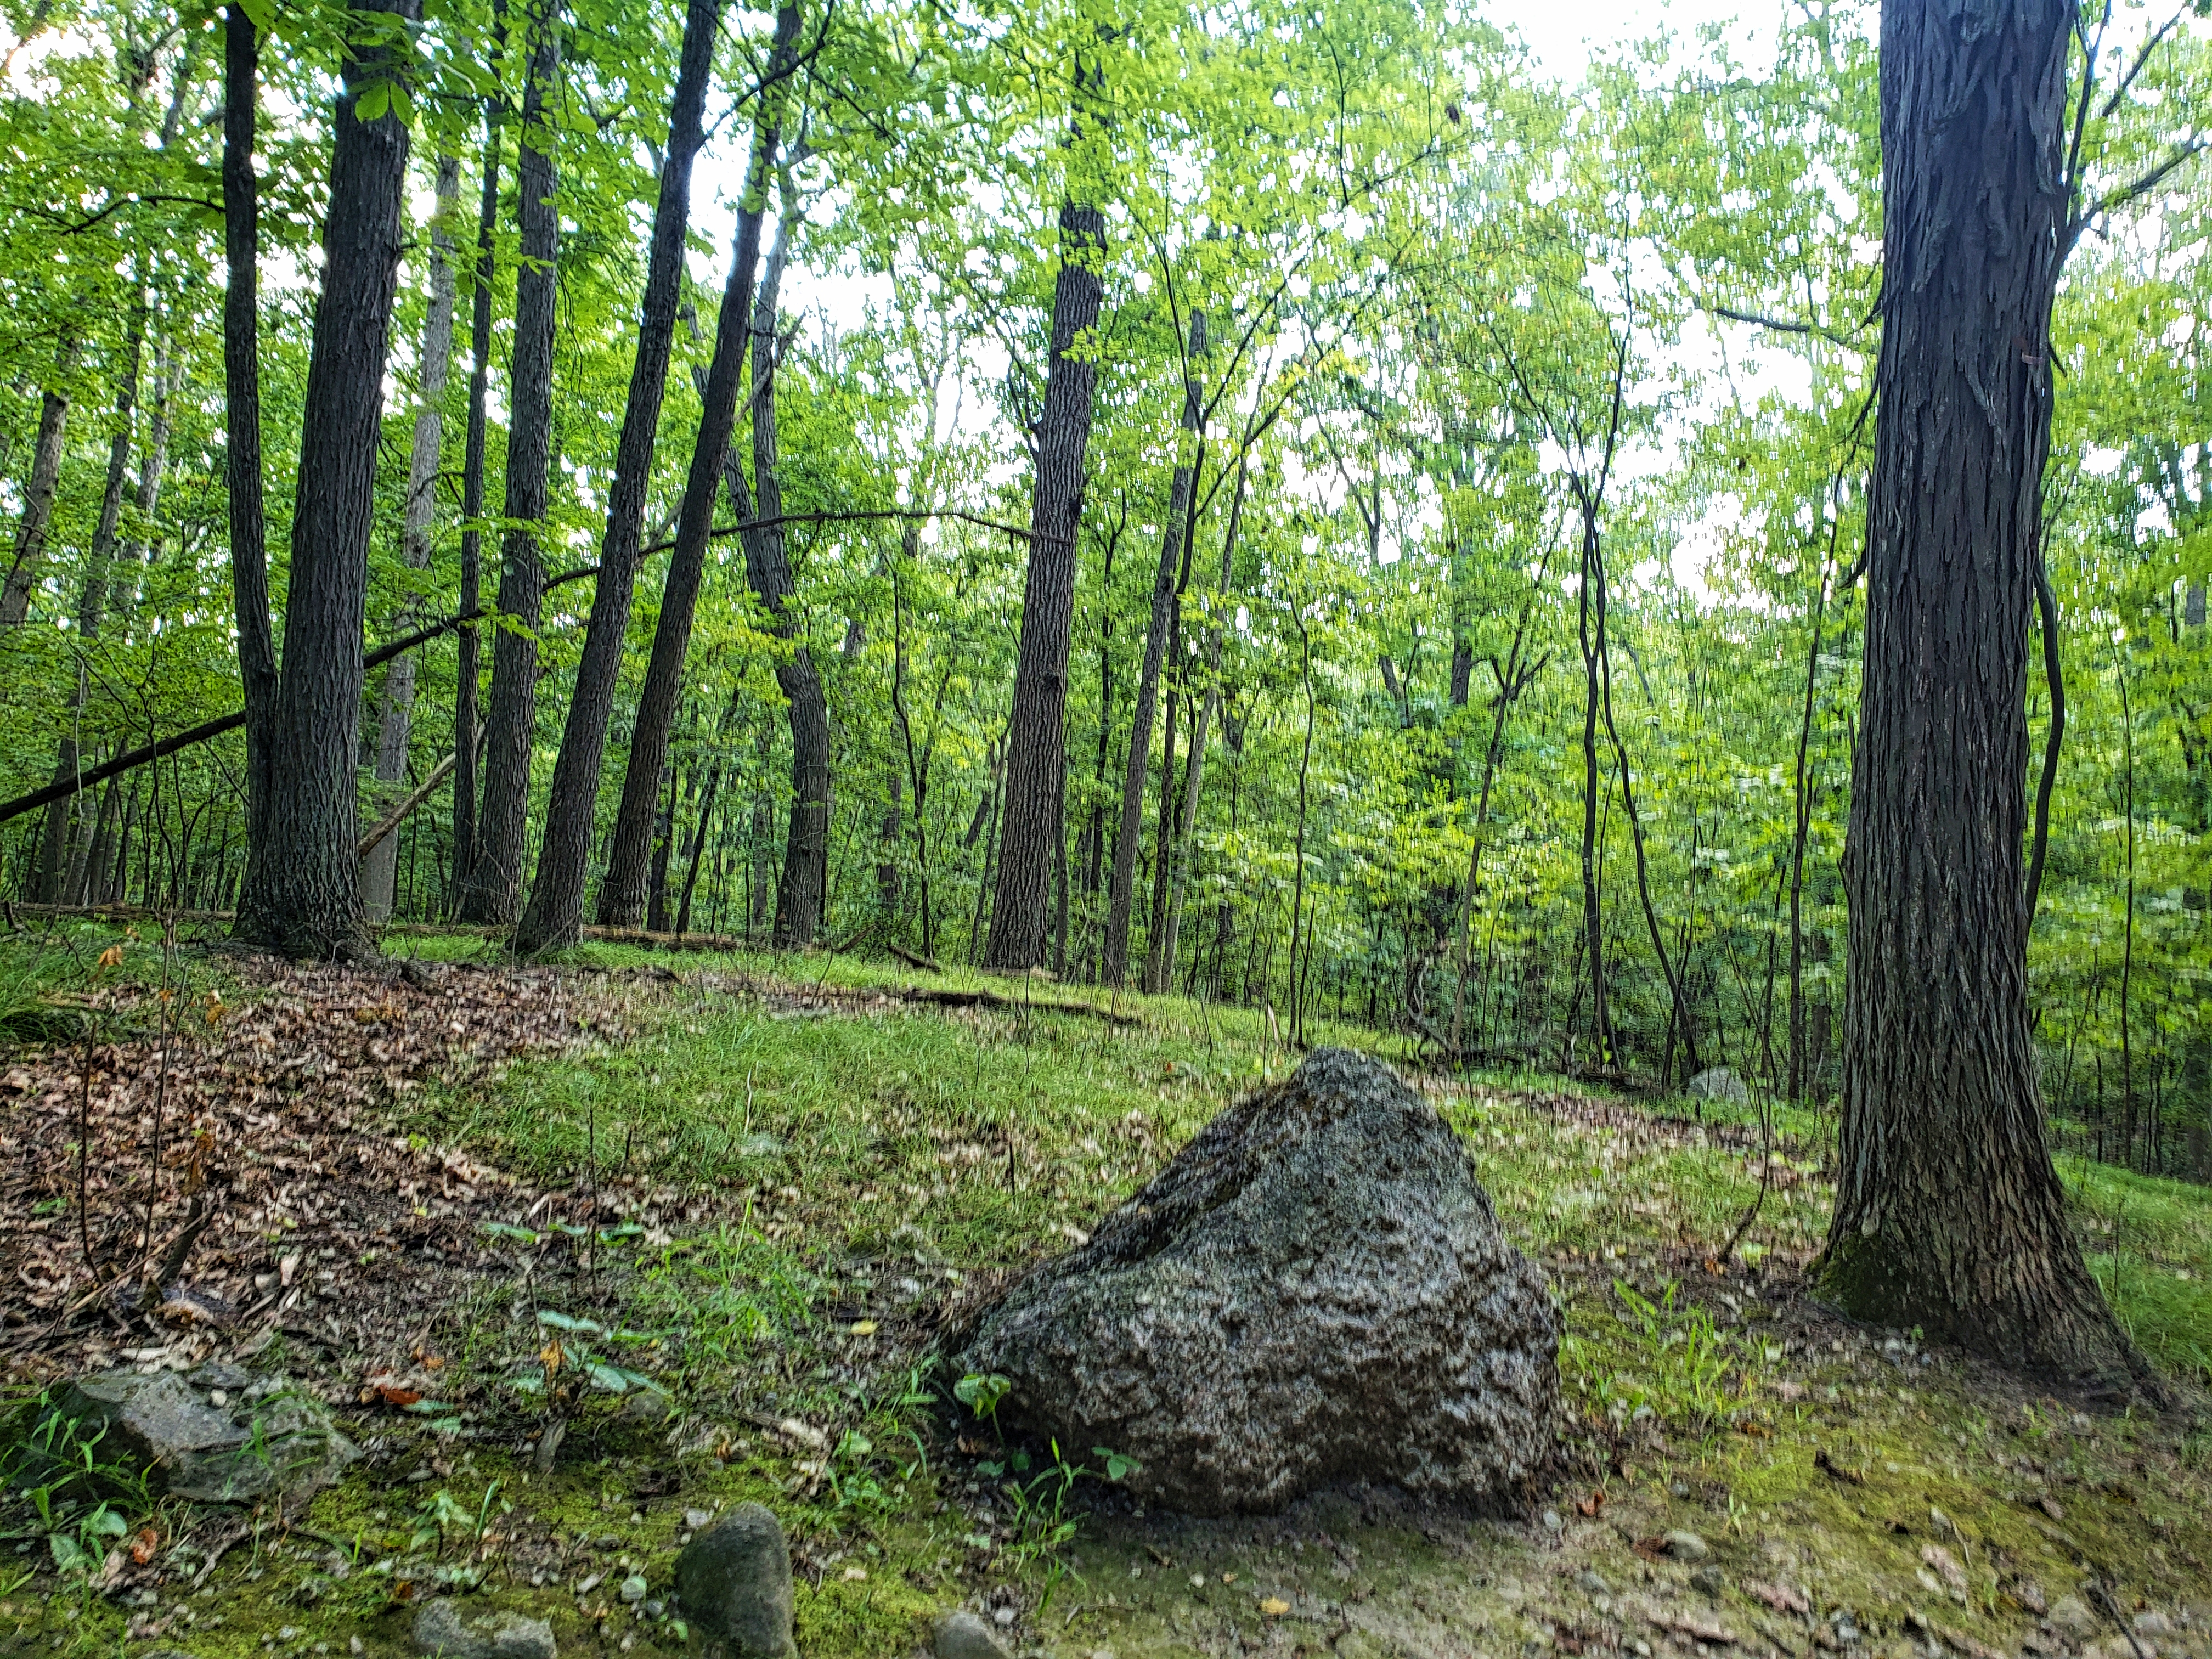 A rock in the foreground of the woods at the West Bloomfield Nature Preserve